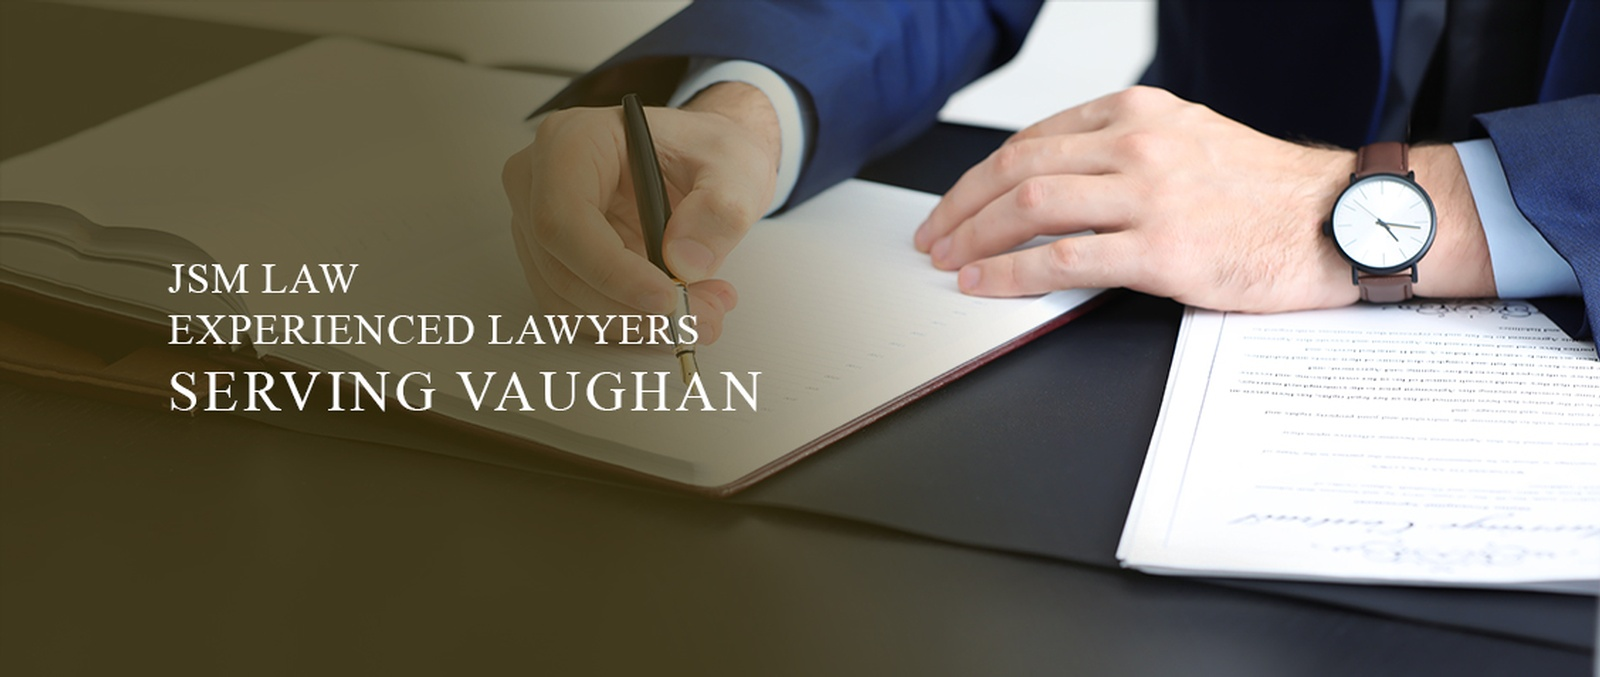 CORPORATE, CRIMINAL AND PERSONAL INJURY LAWYERS VAUGHAN ON